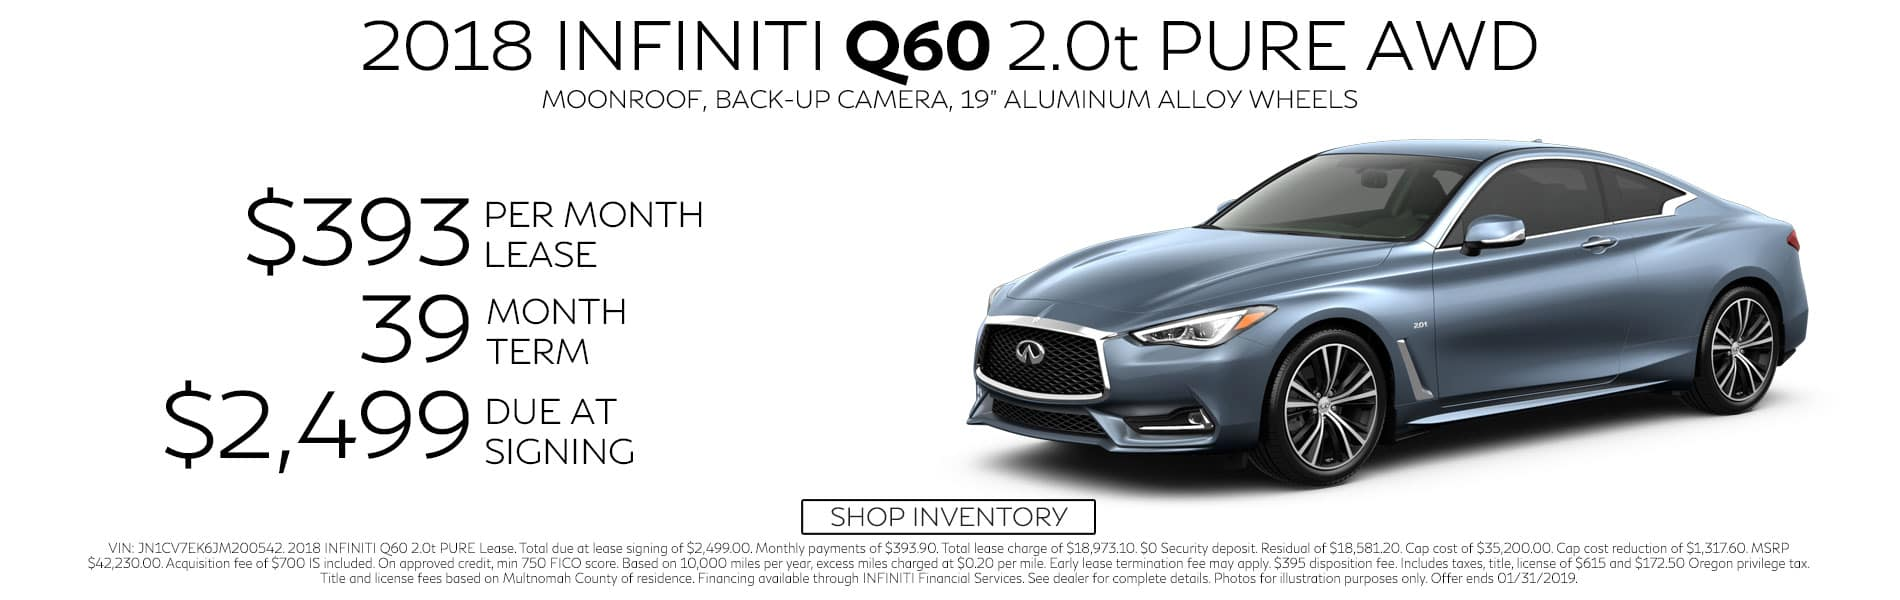 Lease a 2018 Q60 2.0t PURE AWD for $393 per month with $2,499 due at signing